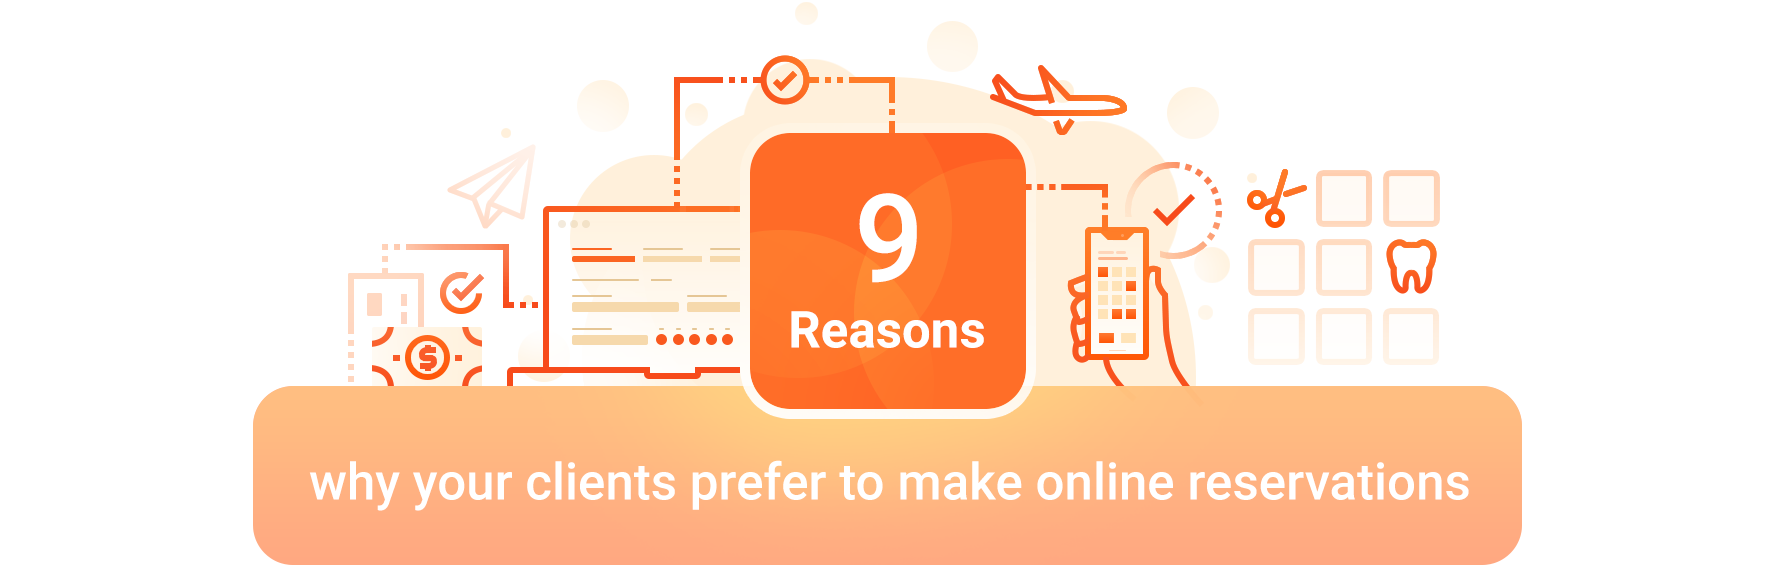 9 reasons why your clients prefer to make online reservations